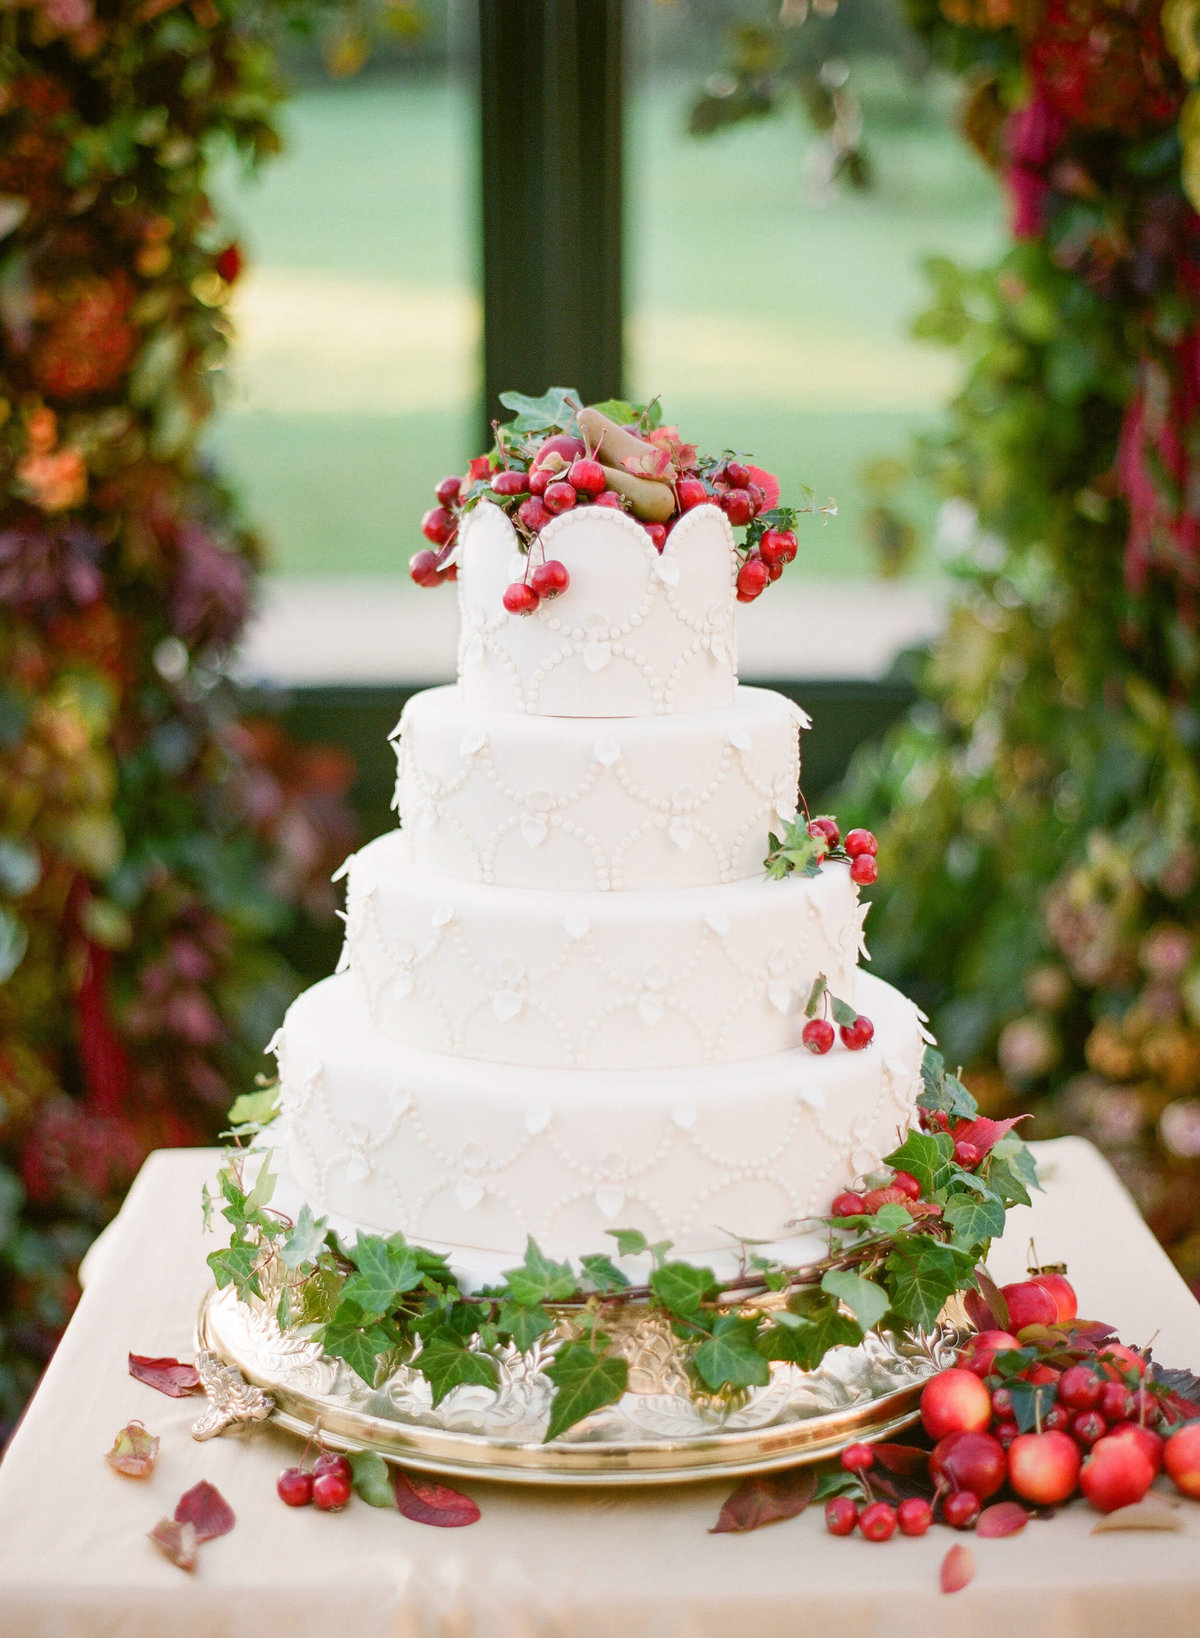 74-KTMerry-wedding-cake-strawberries-Ballyfin-catering